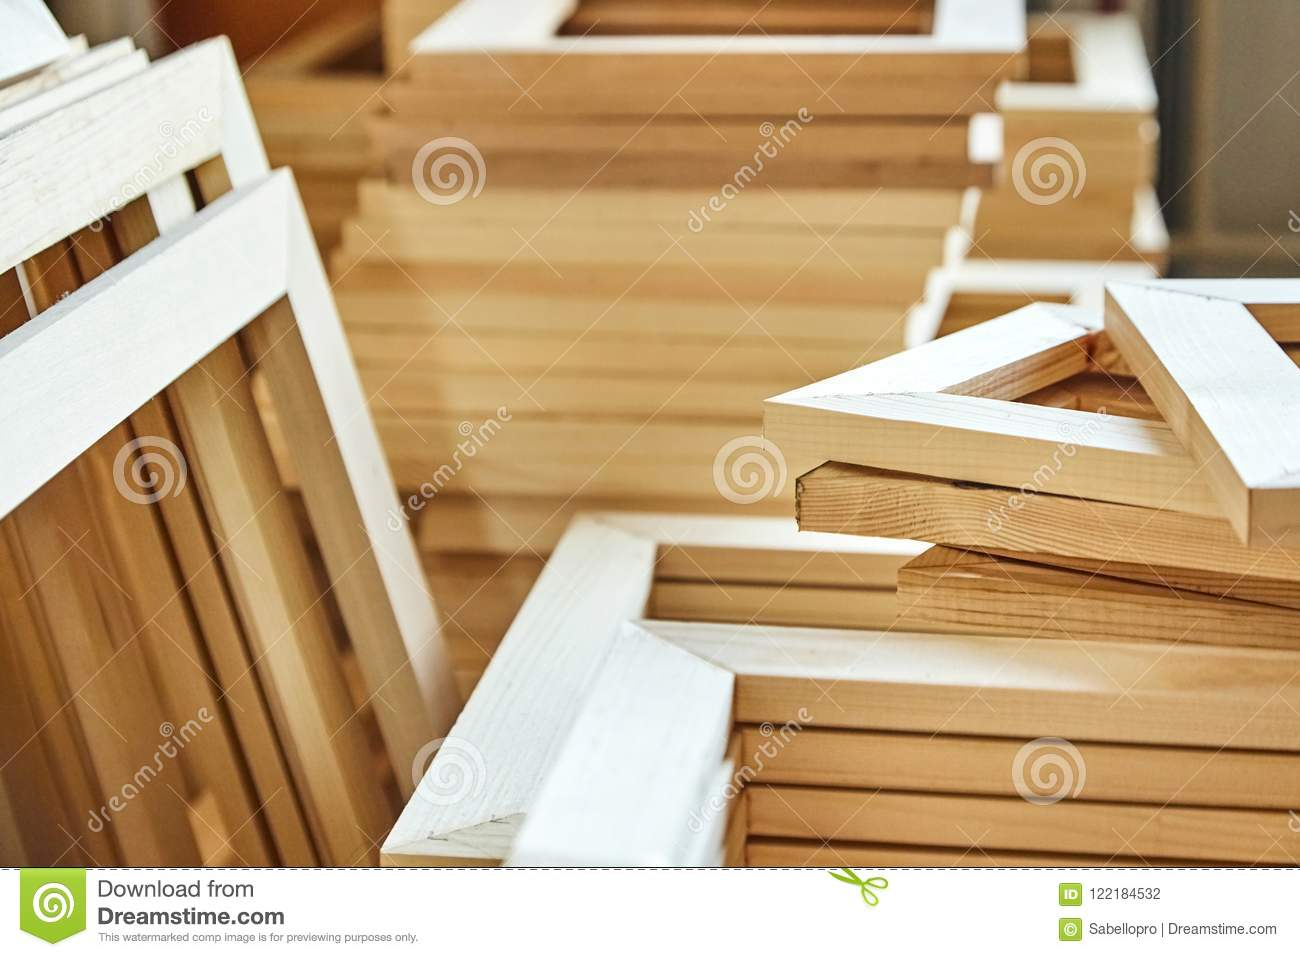 wooden stretcher bar frames subframes for gallery wrapped canva